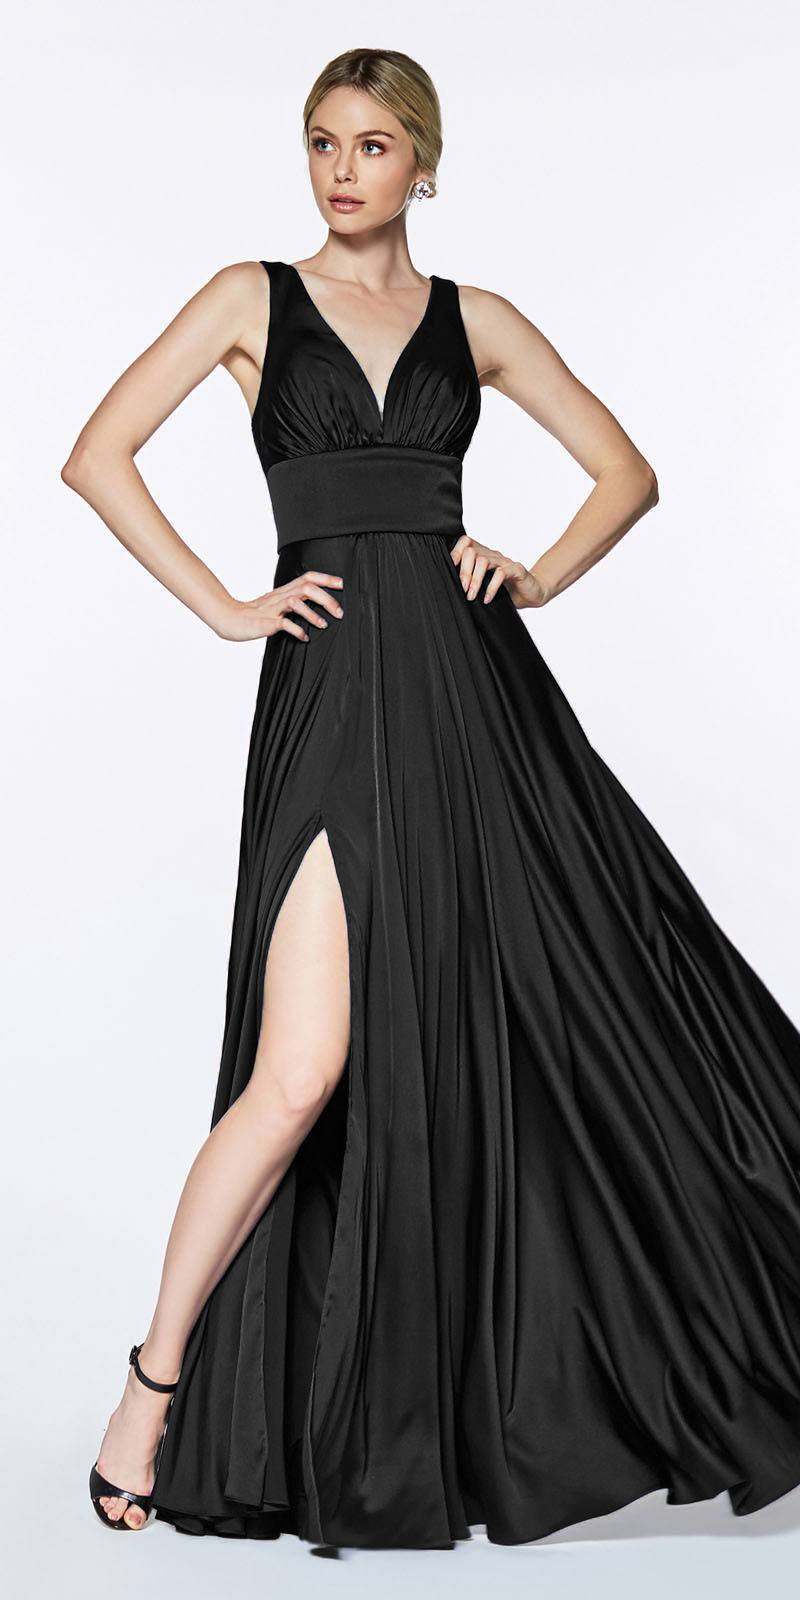 Cinderella Divine - 7469 Sleeveless V Neck Flowing Satin Gown in Black